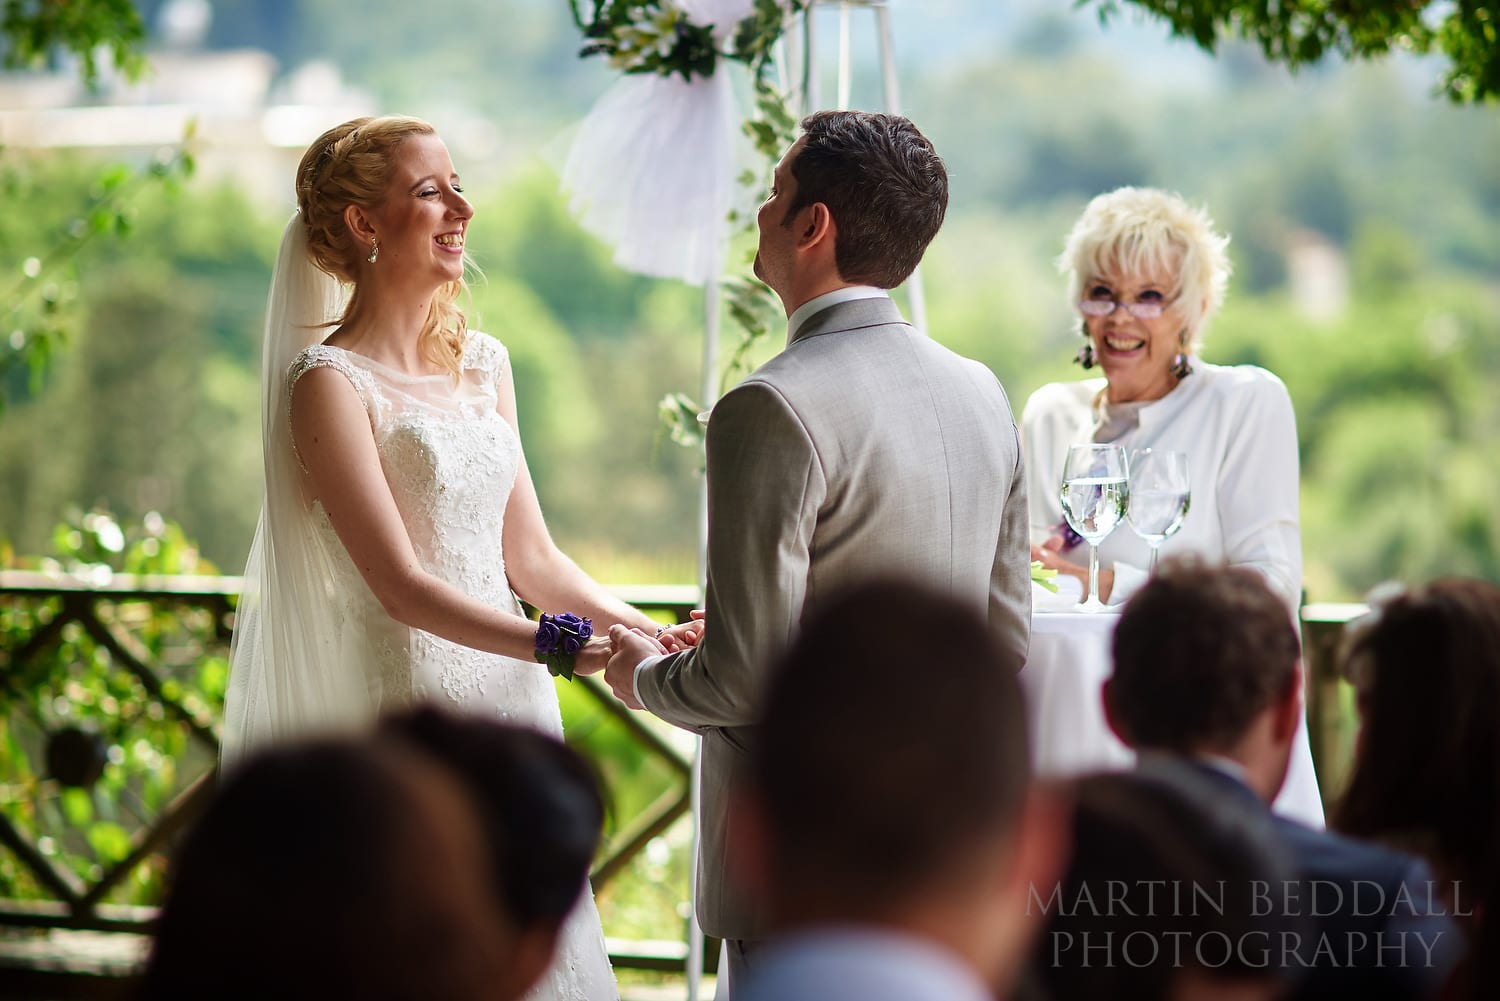 Humanist wedding ceremony at Bellapais Abbey